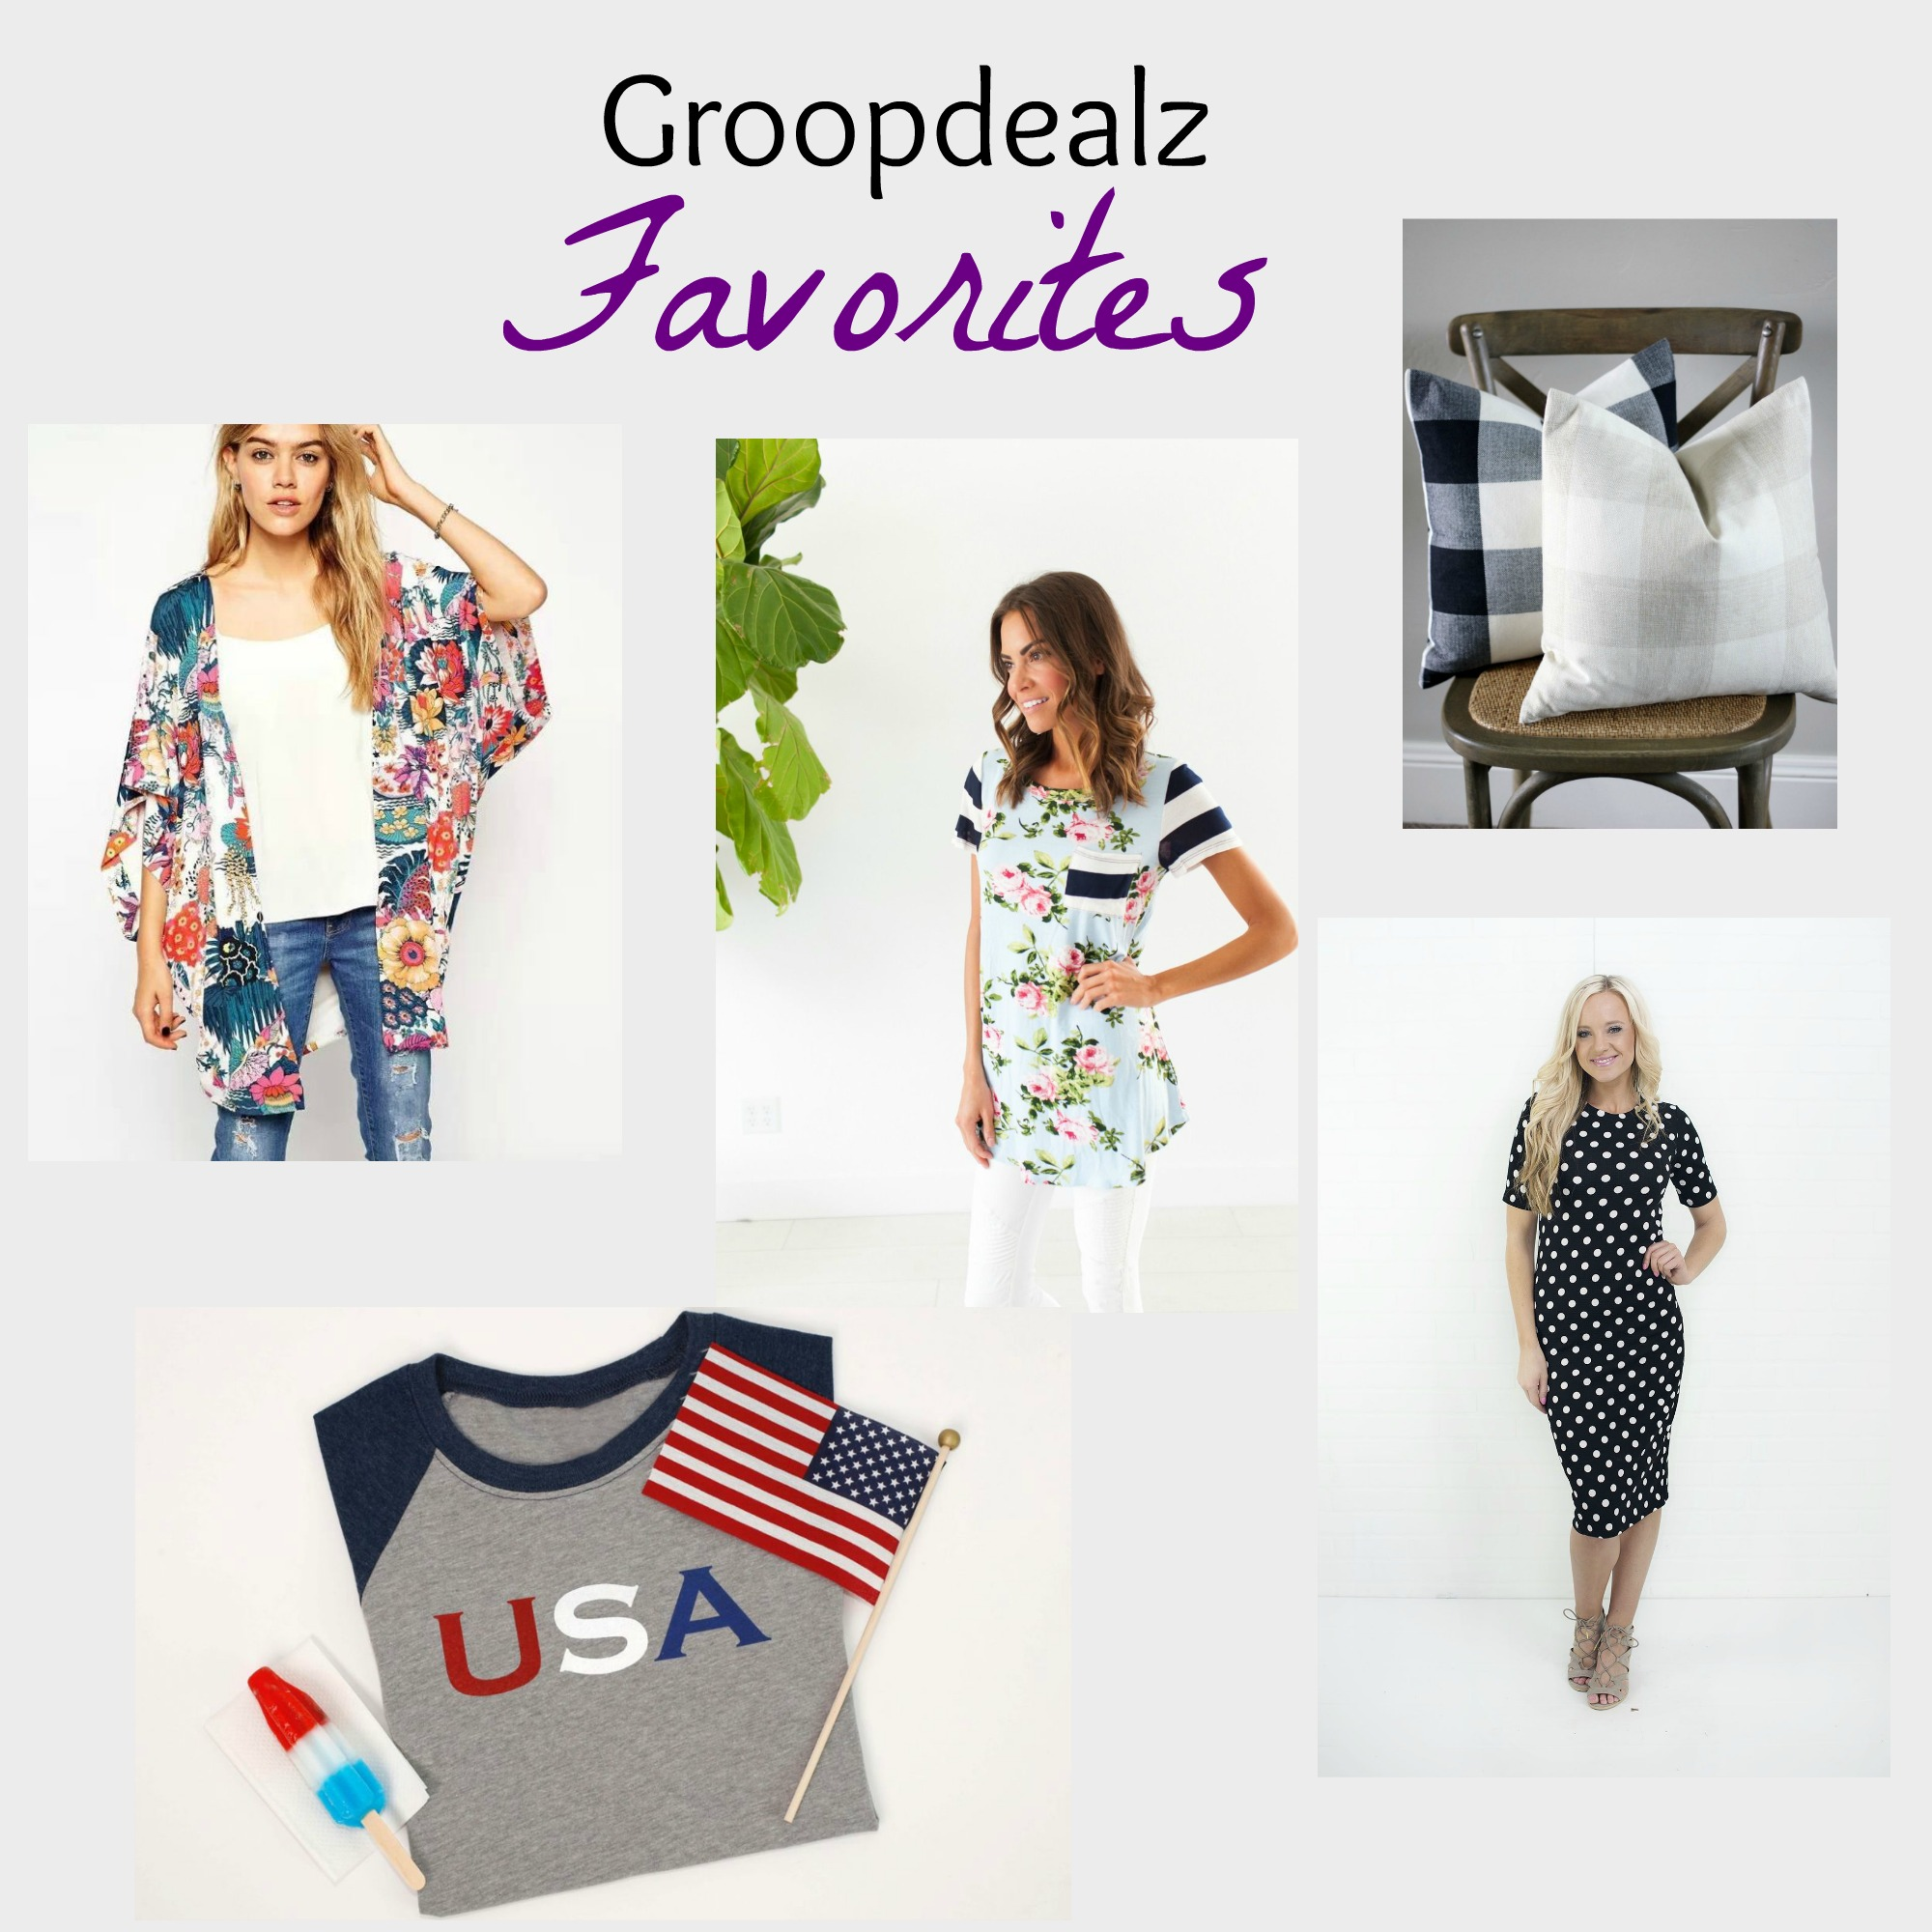 Groopdealz graphic